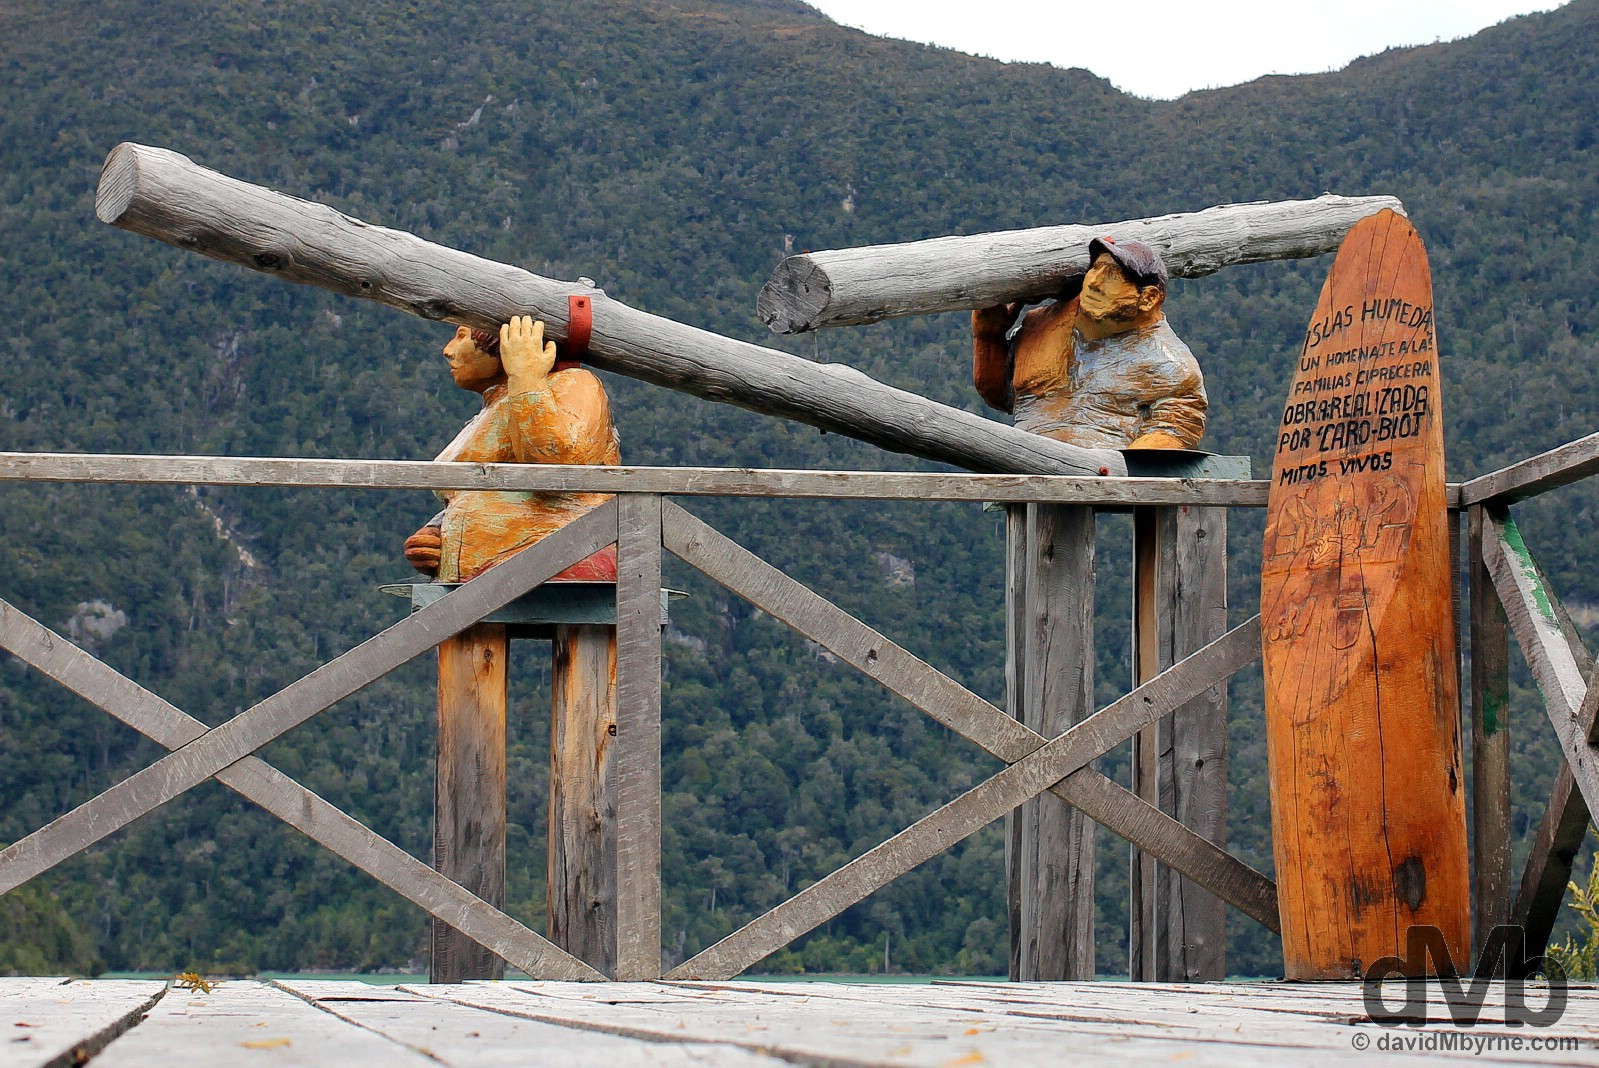 Logging statues in Plaza Orompello, Caleta Tortel, Aysen, Chile. October 29, 2015.